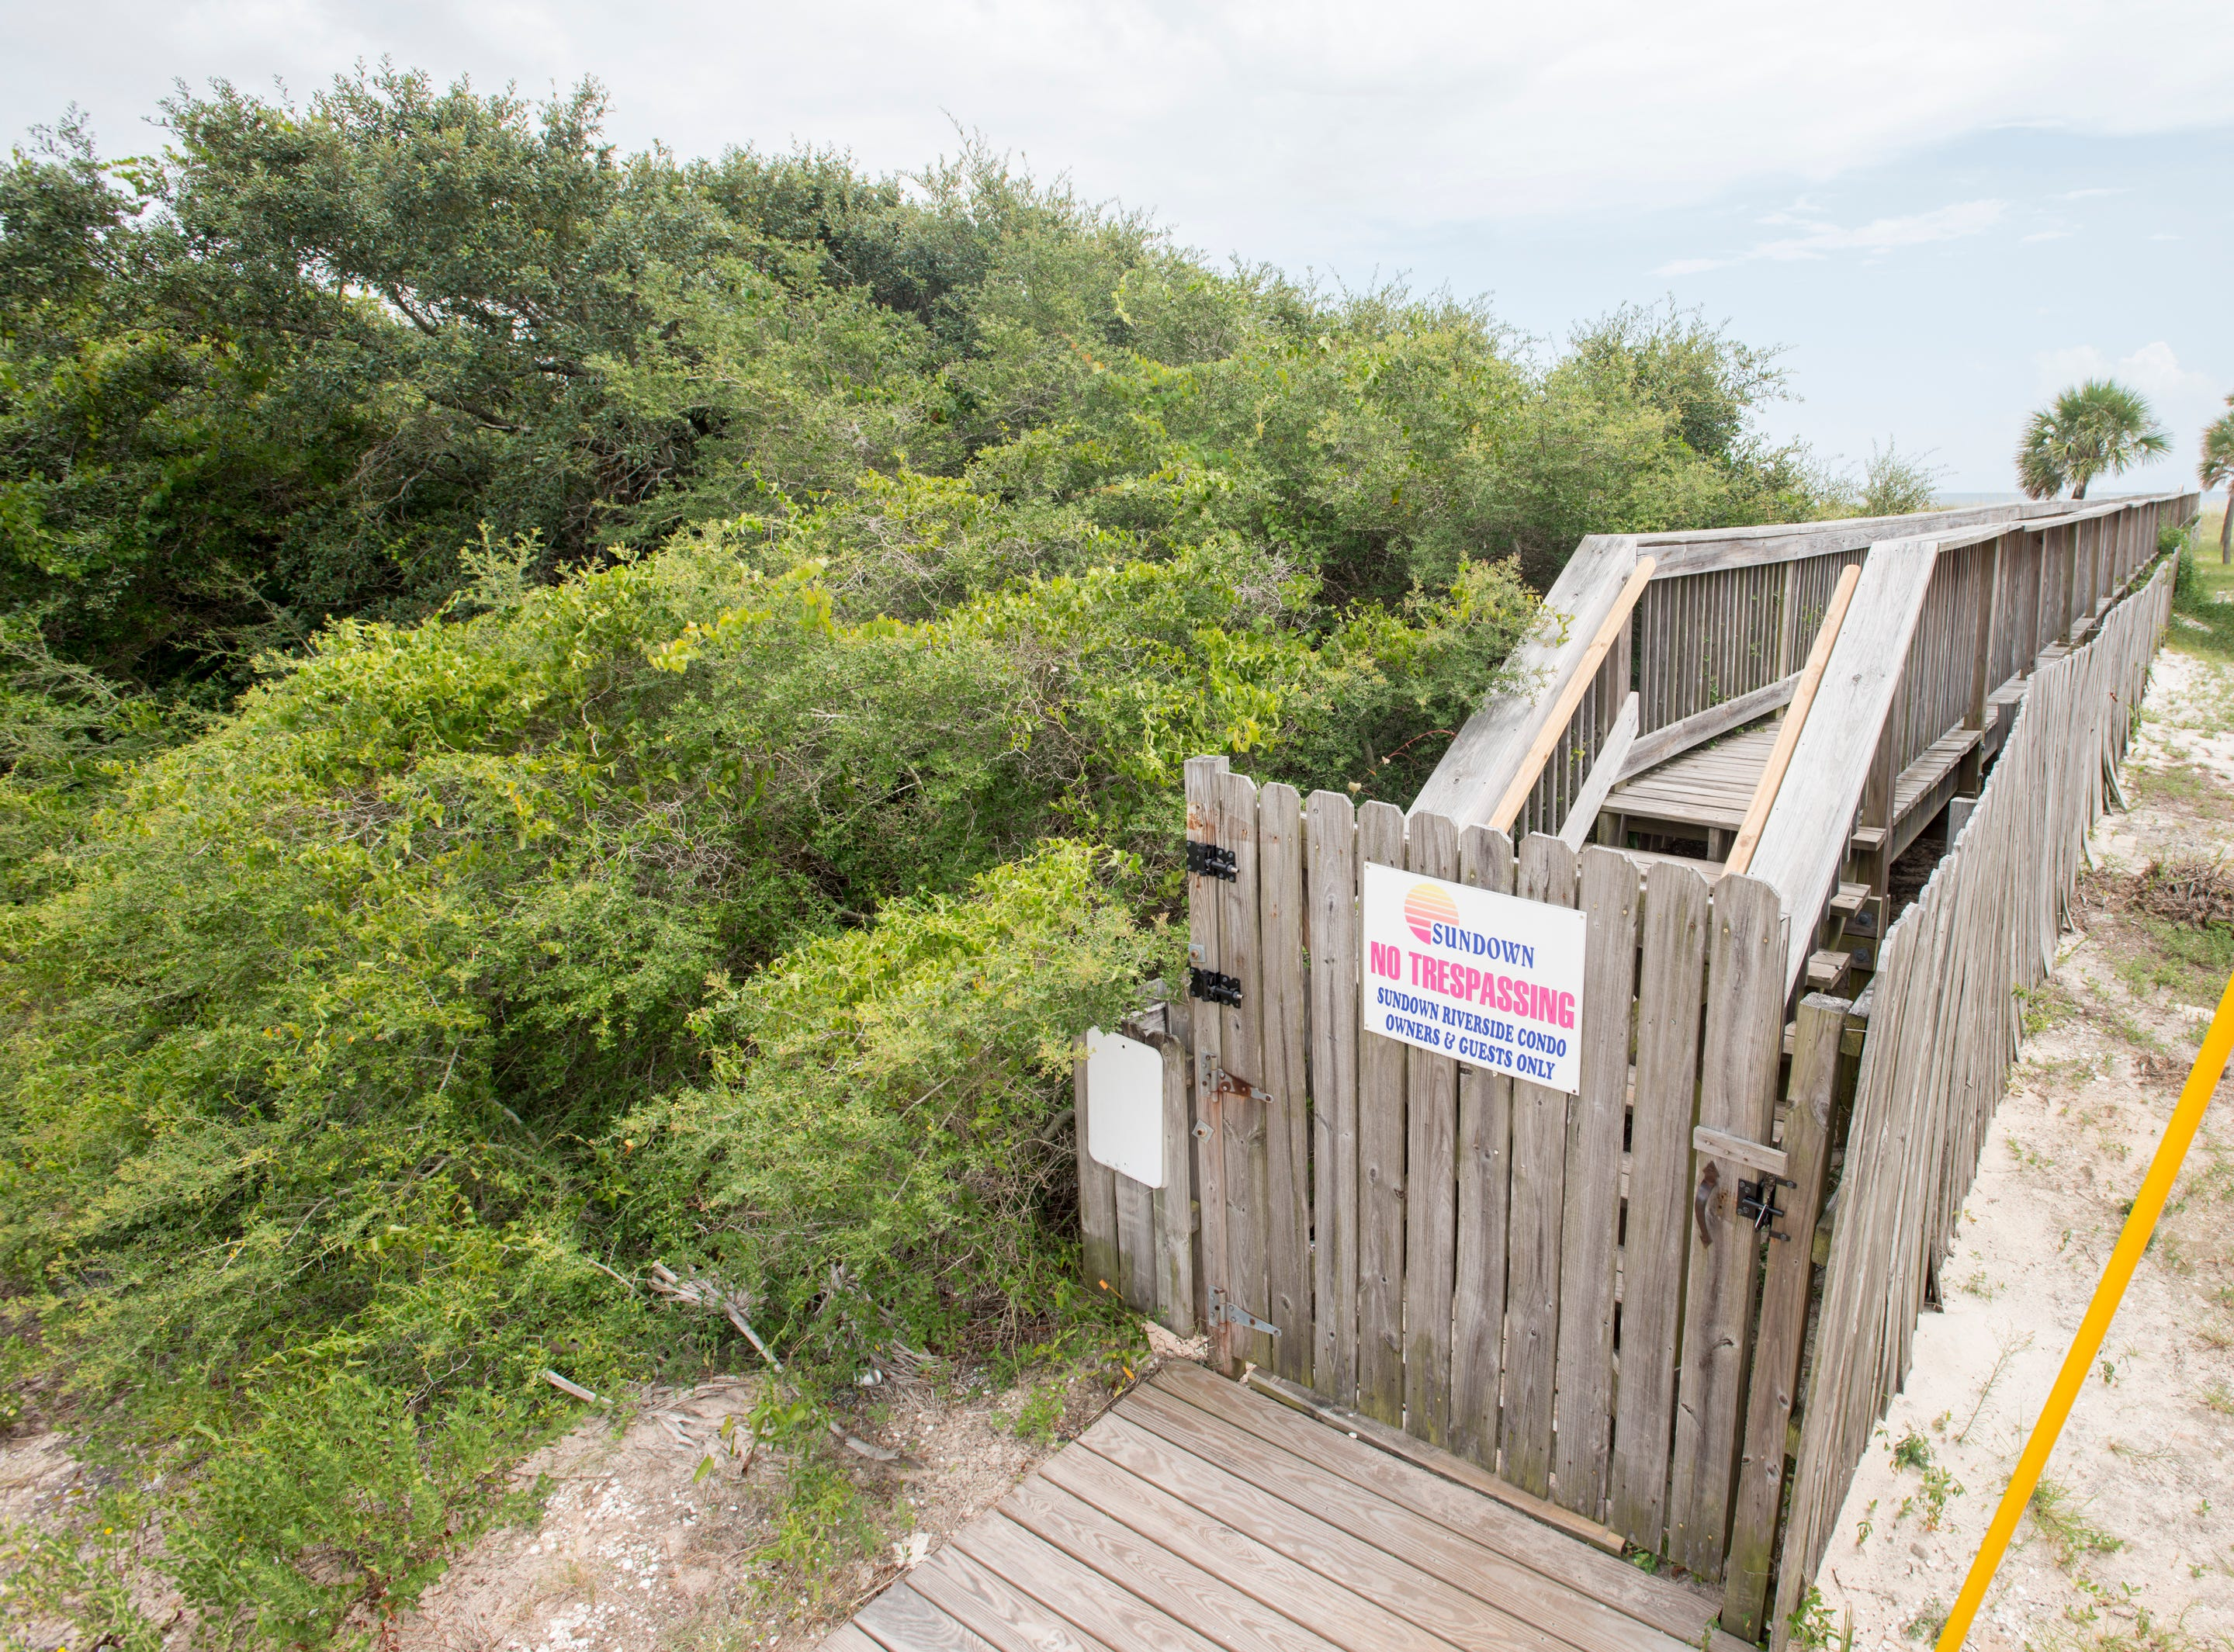 A private walkover owned by Sundown Riverside Condos runs in between the Crab Trap restaurant and beachfront property owned by Escambia County in Perdido Key.   Tuesday, July 31, 2018.  The county owned property currently sits vacant with no public parking and no public access to the beach.